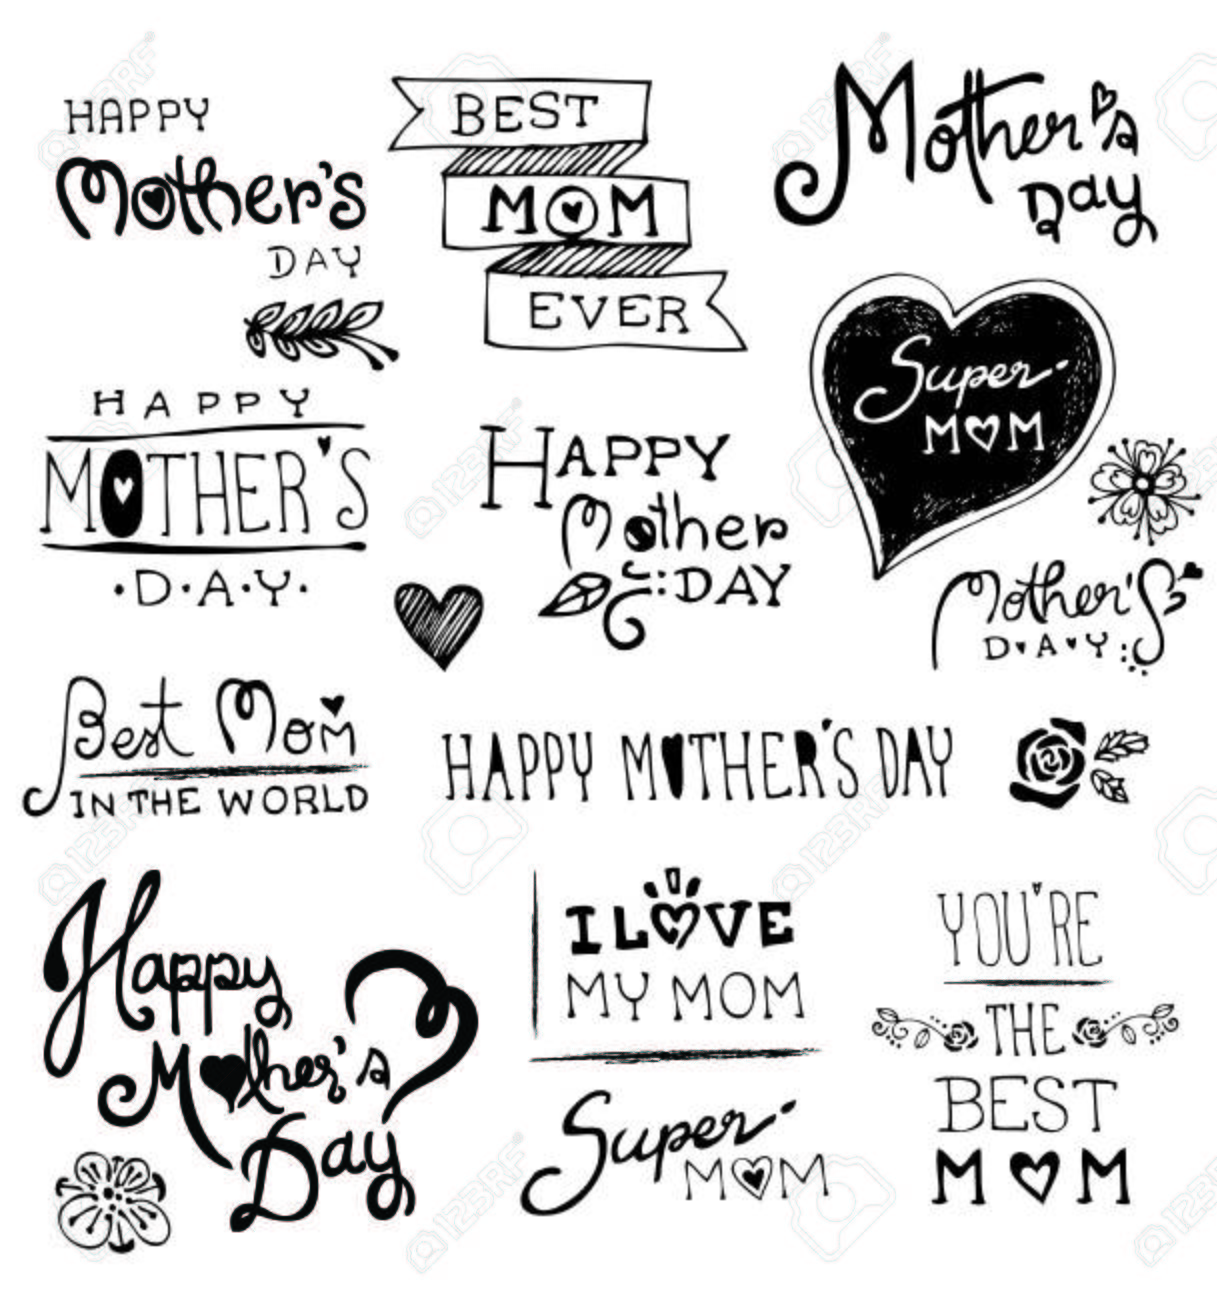 Happy Mothers Day hand drawn typography, Doodles vector illustration - 39239513